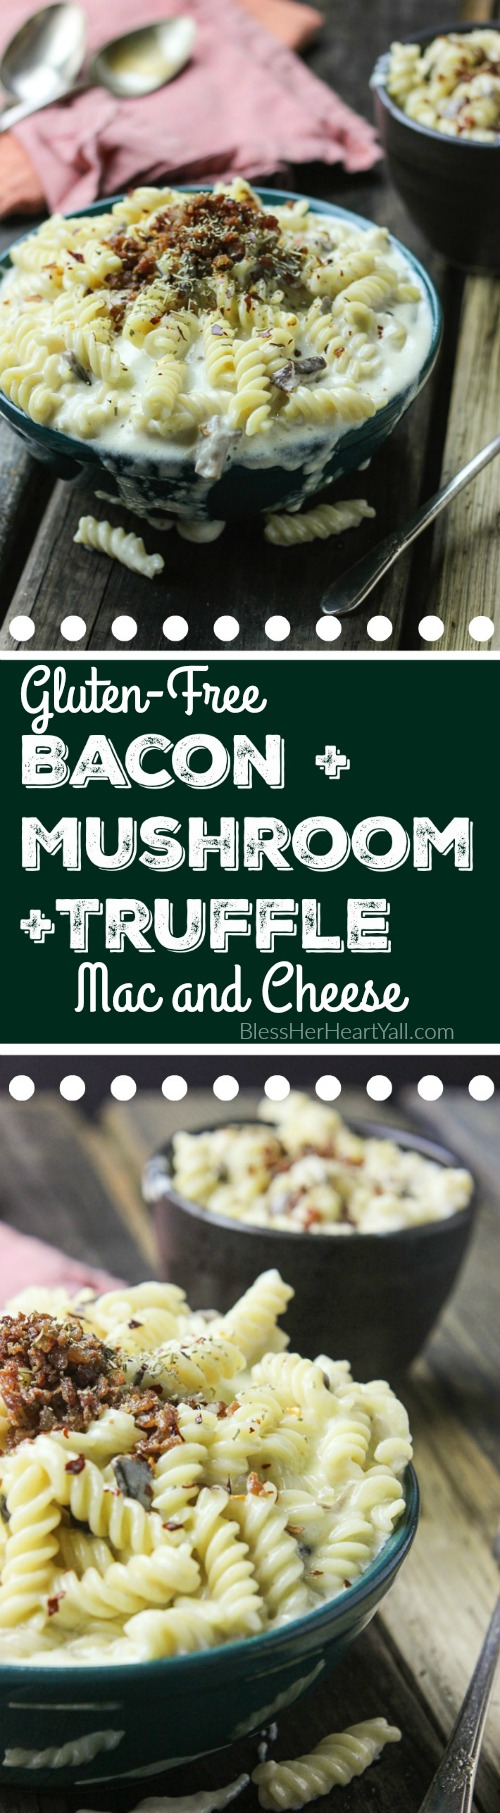 This spicy gluten-free mac and cheese recipe will blow your socks off in under 30 minutes! Let's combine bacon, mushrooms, truffle oil, some heat, and mac and cheese, shall we? Then we will create spicy, creamy, cheesy perfection. www.blessherheartyall.com